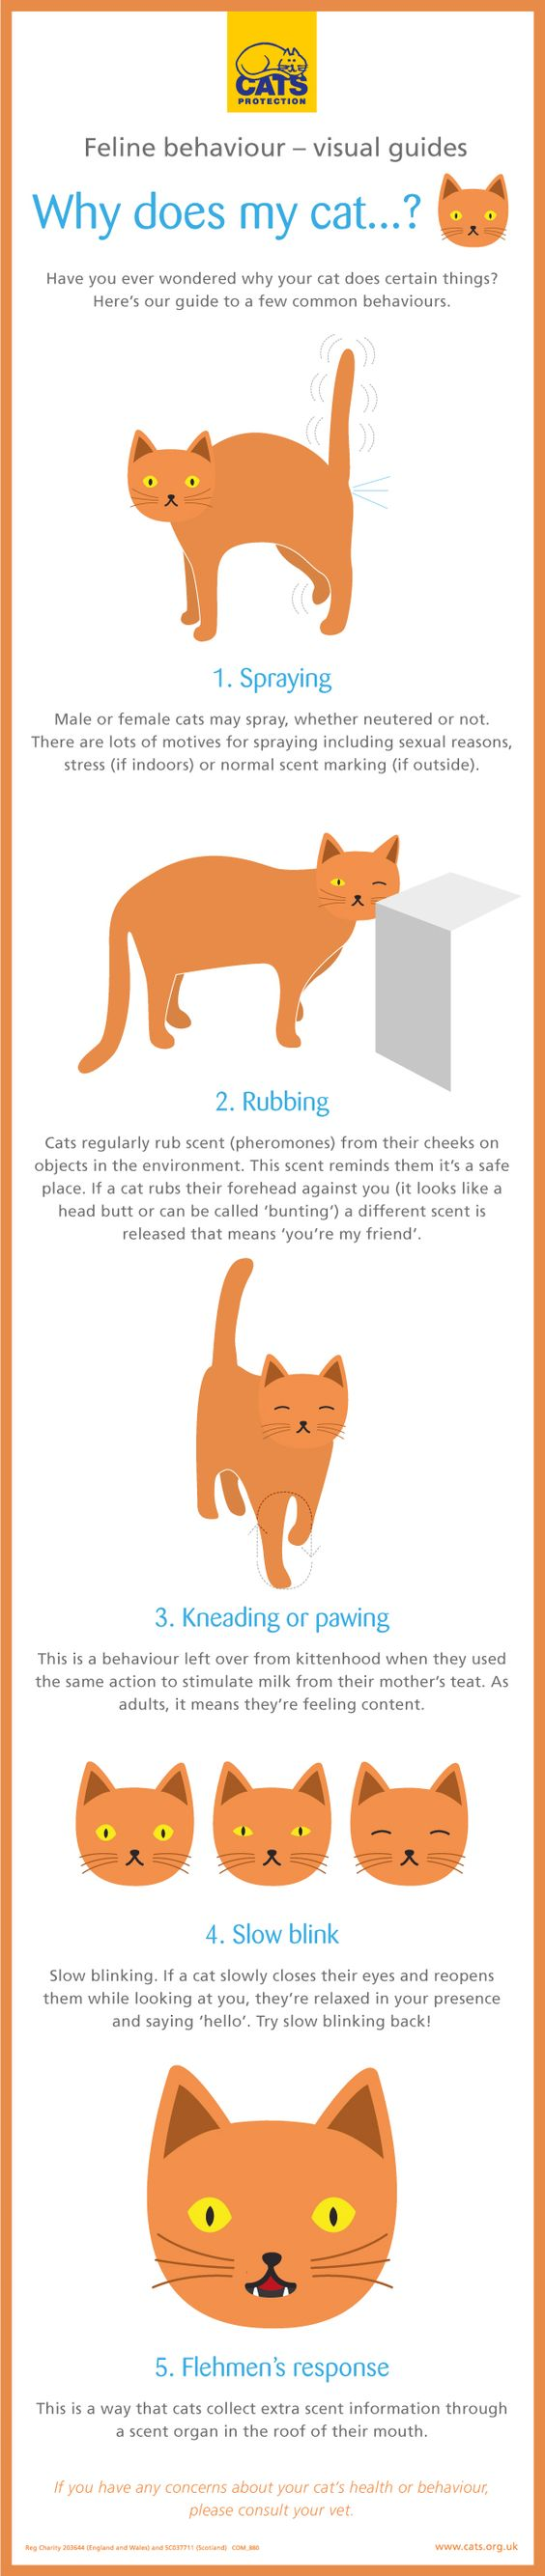 Meow! Blog | Cats Protection: Feline behaviour explained – why does my cat…?